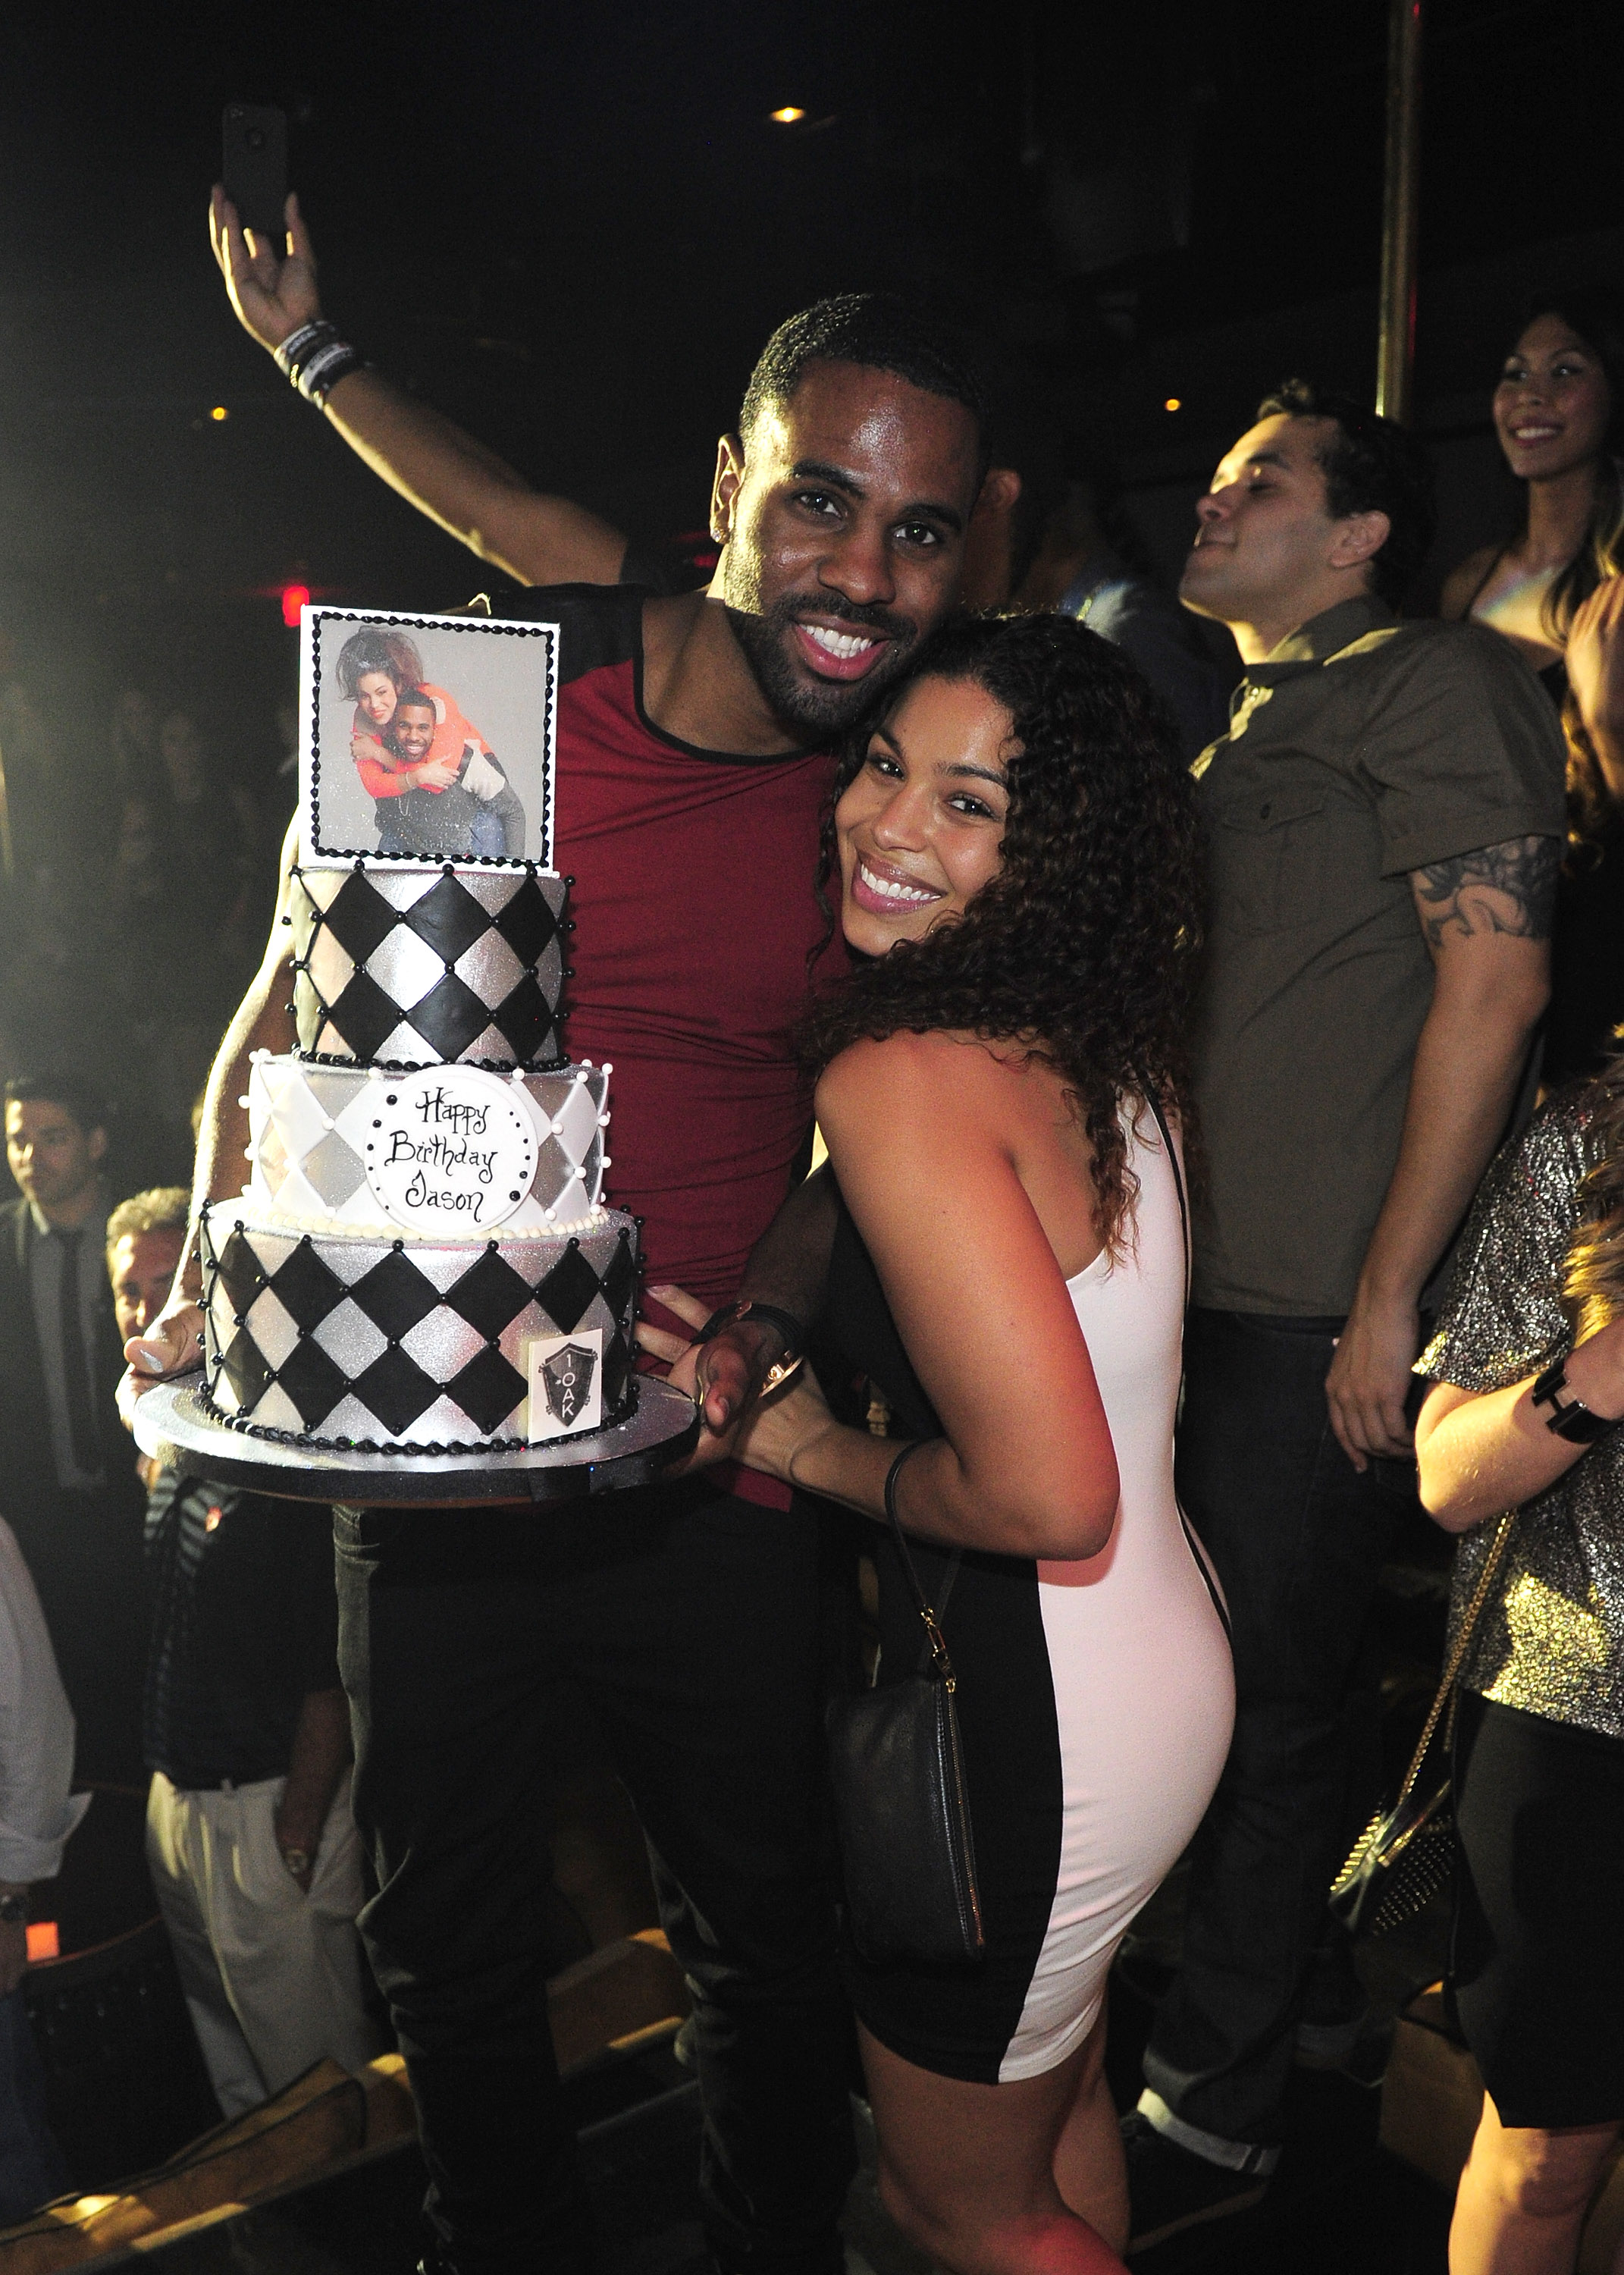 Jason Derulo celebrated his birthday with fiancée Jordan Sparks at 1 OAK Nightclub at The Mirage in Las Vegas, Sept. 21. (WireImage/Steven Lawton)